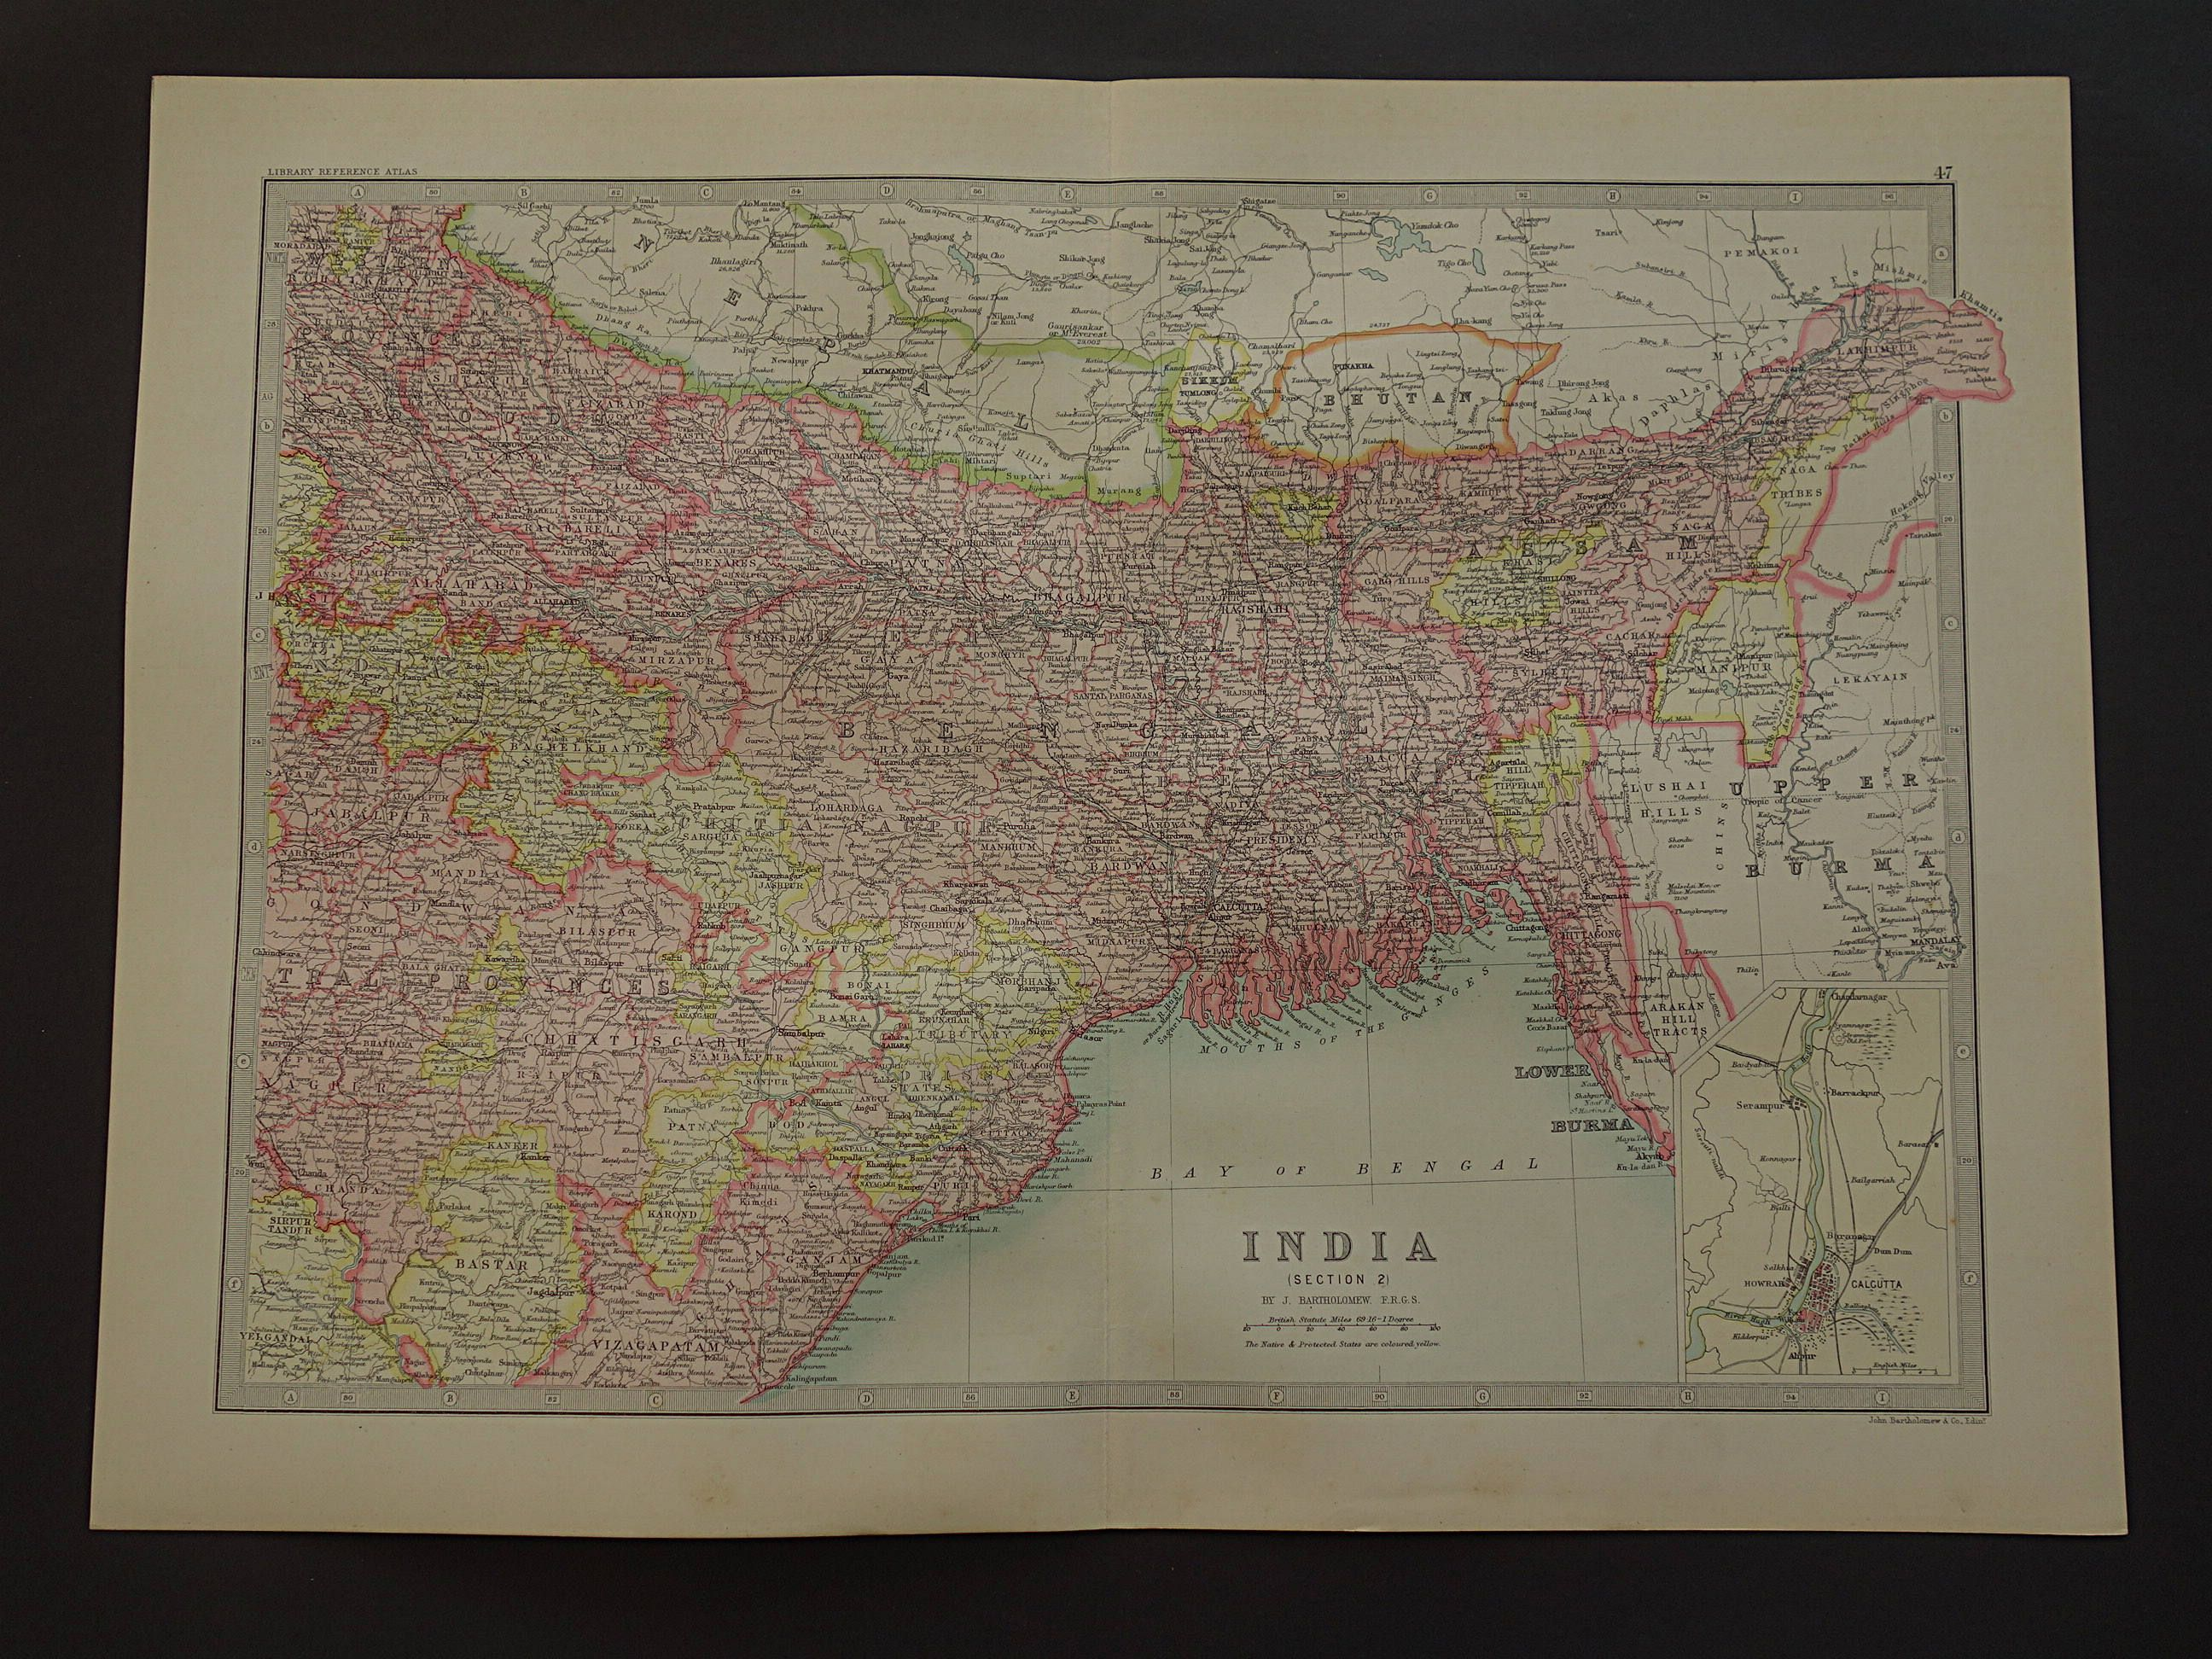 India map large 1890 original old antique print of calcutta kolkata india map large 1890 original old antique print of calcutta kolkata bangladesh dhaka patna darjeeling vintage maps poster 14x19 big by vintageoldmaps on gumiabroncs Image collections